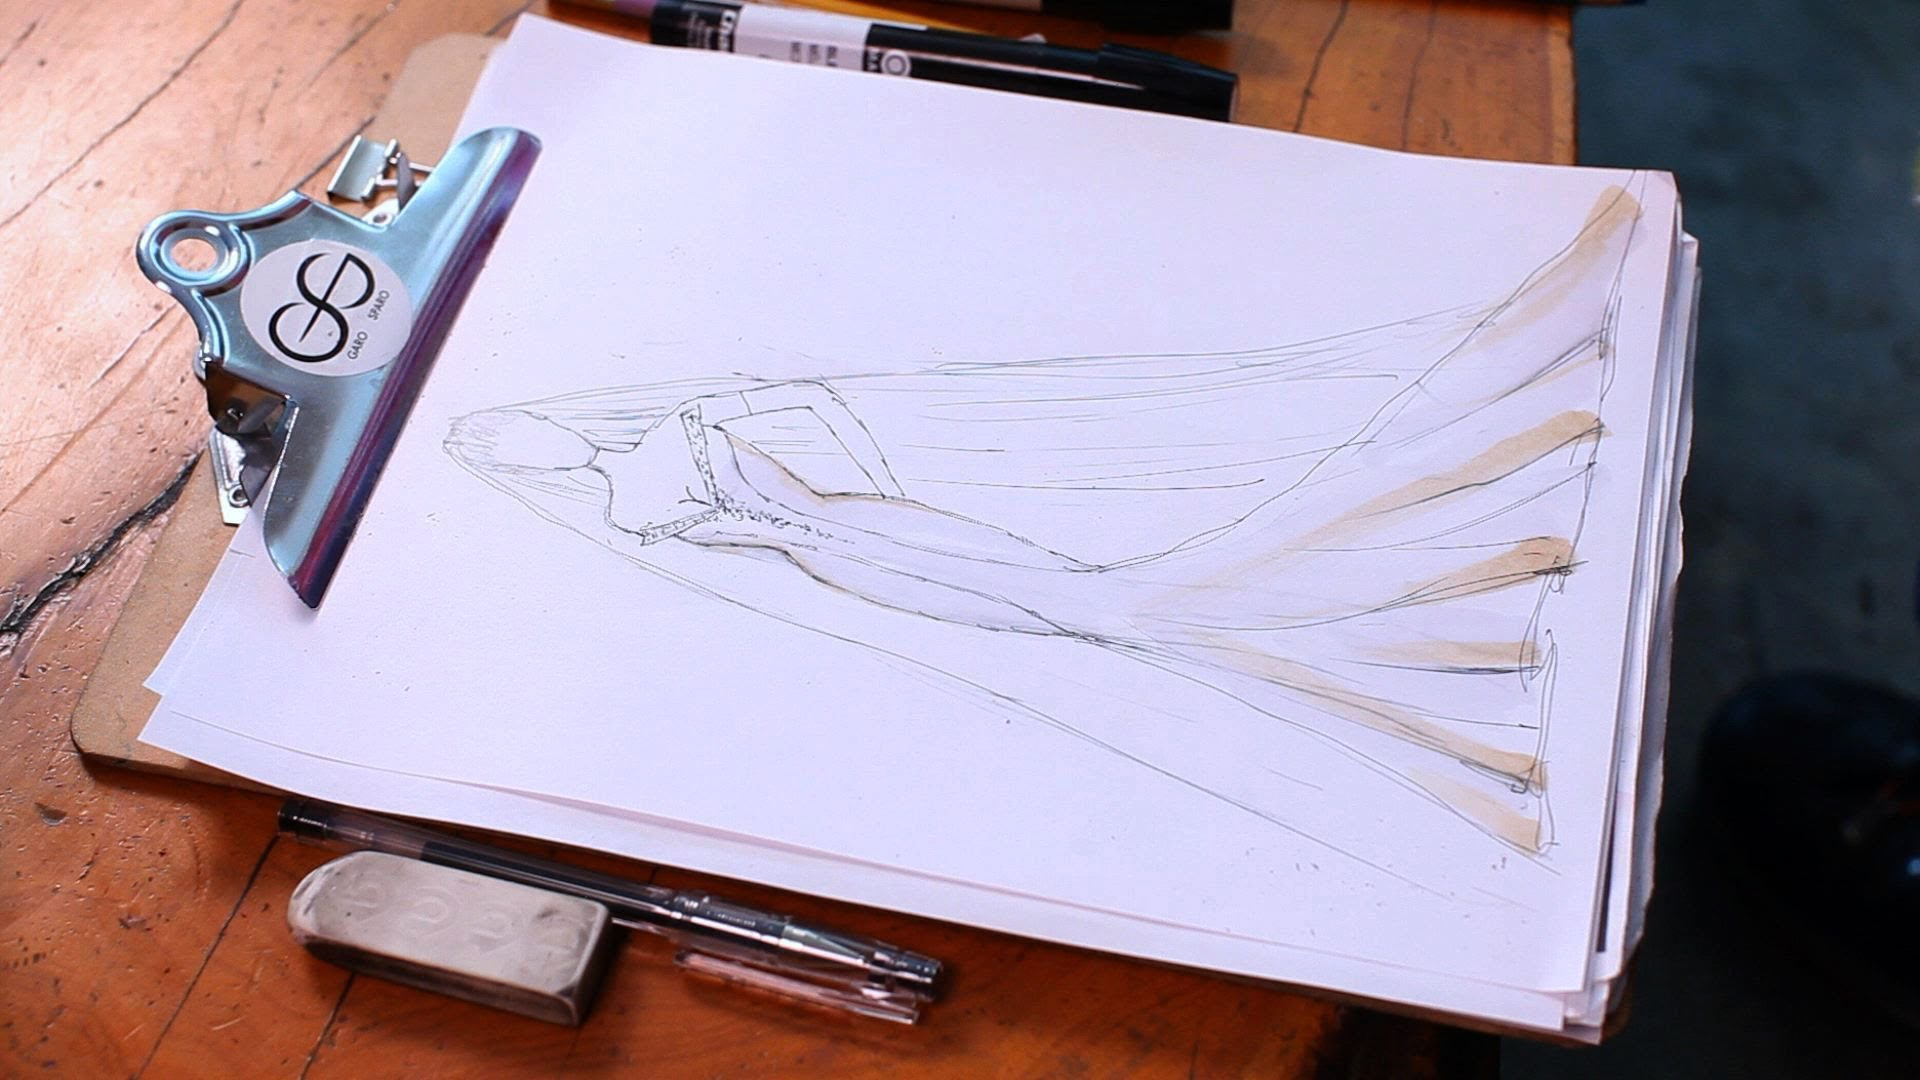 Drawing the sketch of the wedding gown